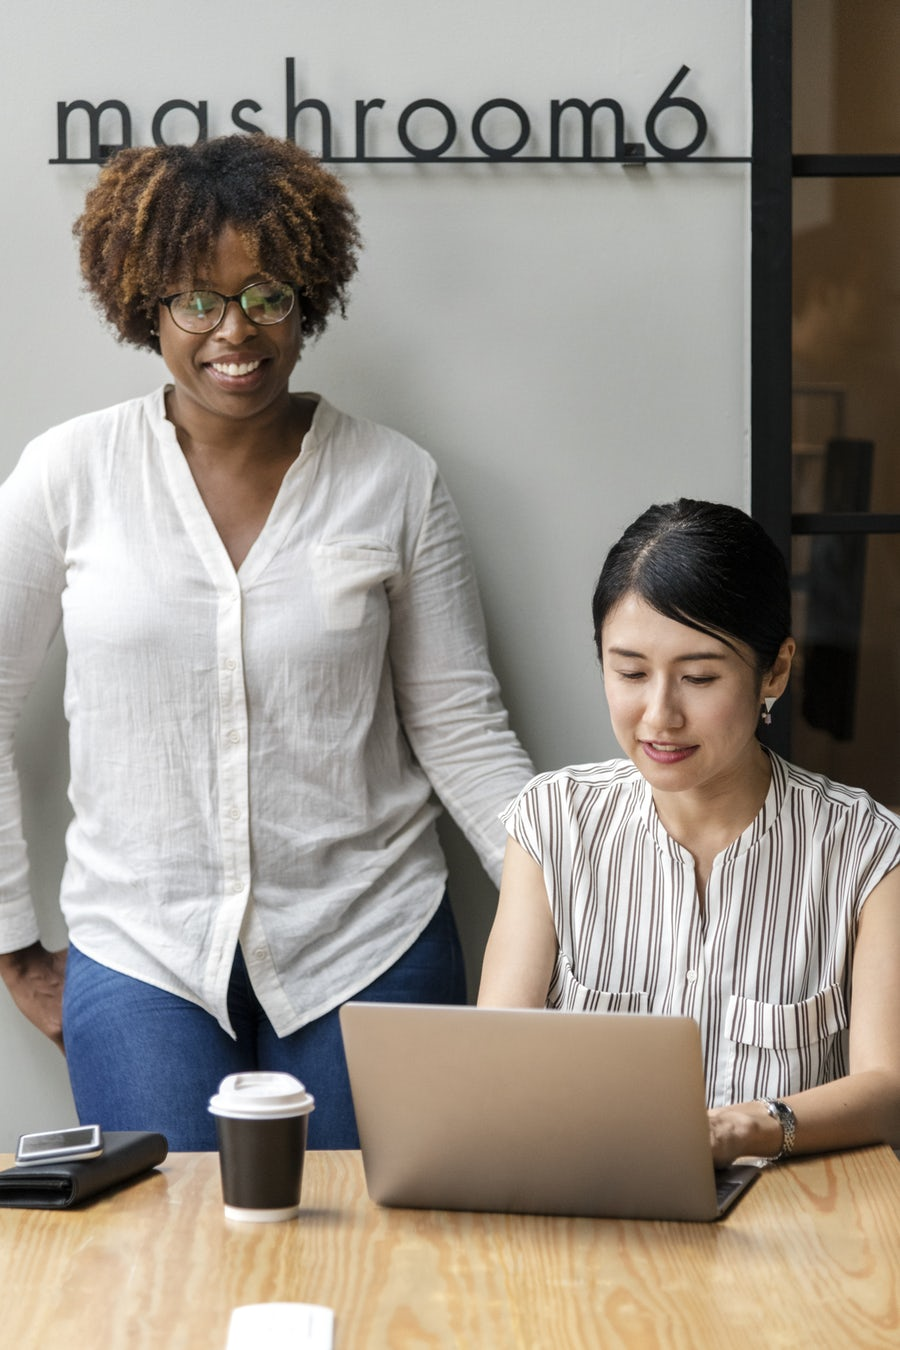 7 Steps to Make Meaninful Connections at Your Next Client Meeting